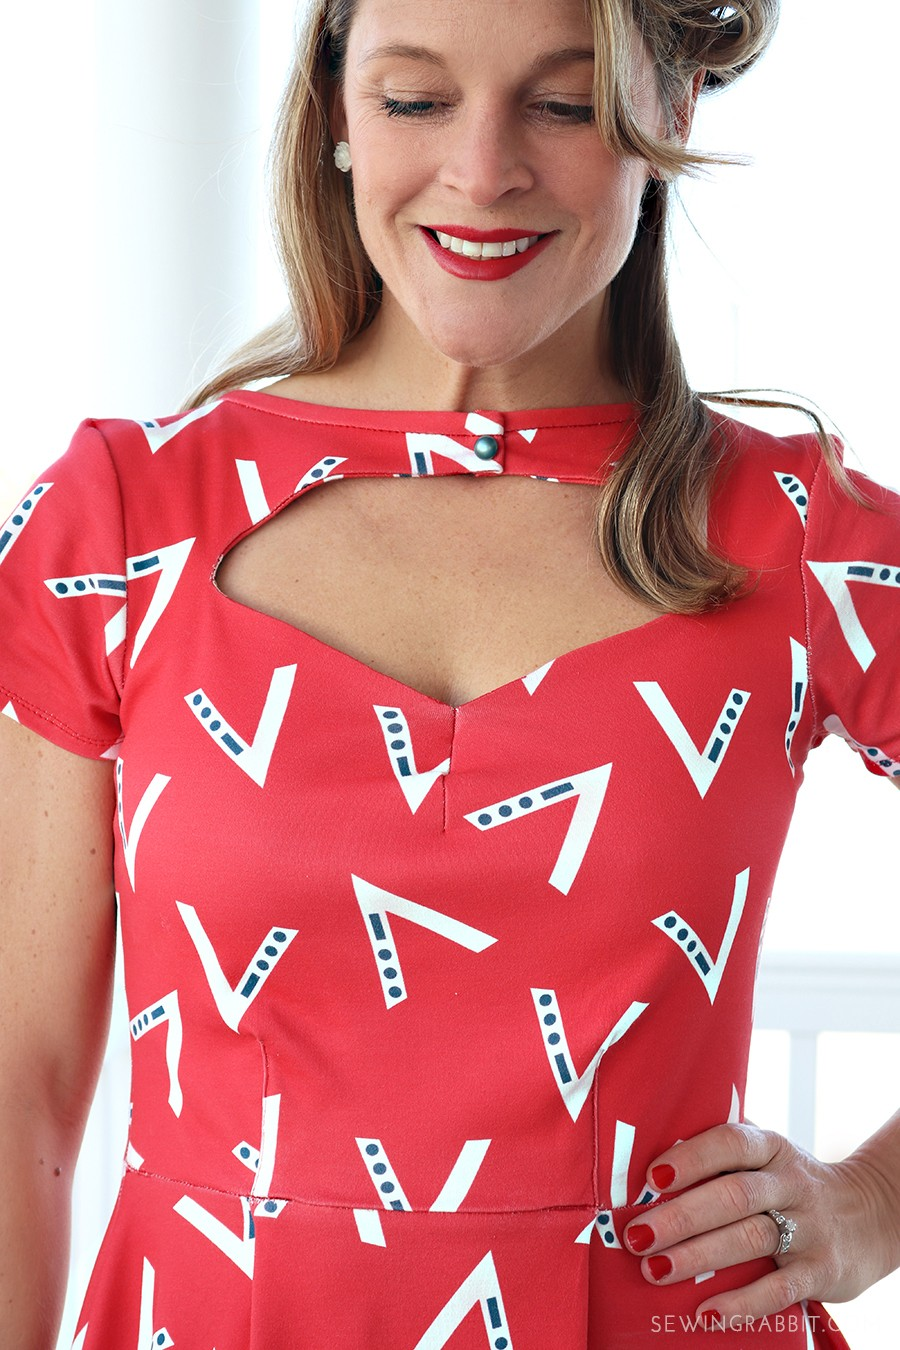 V is for Victory Dress - 1940's inspired dress DIY